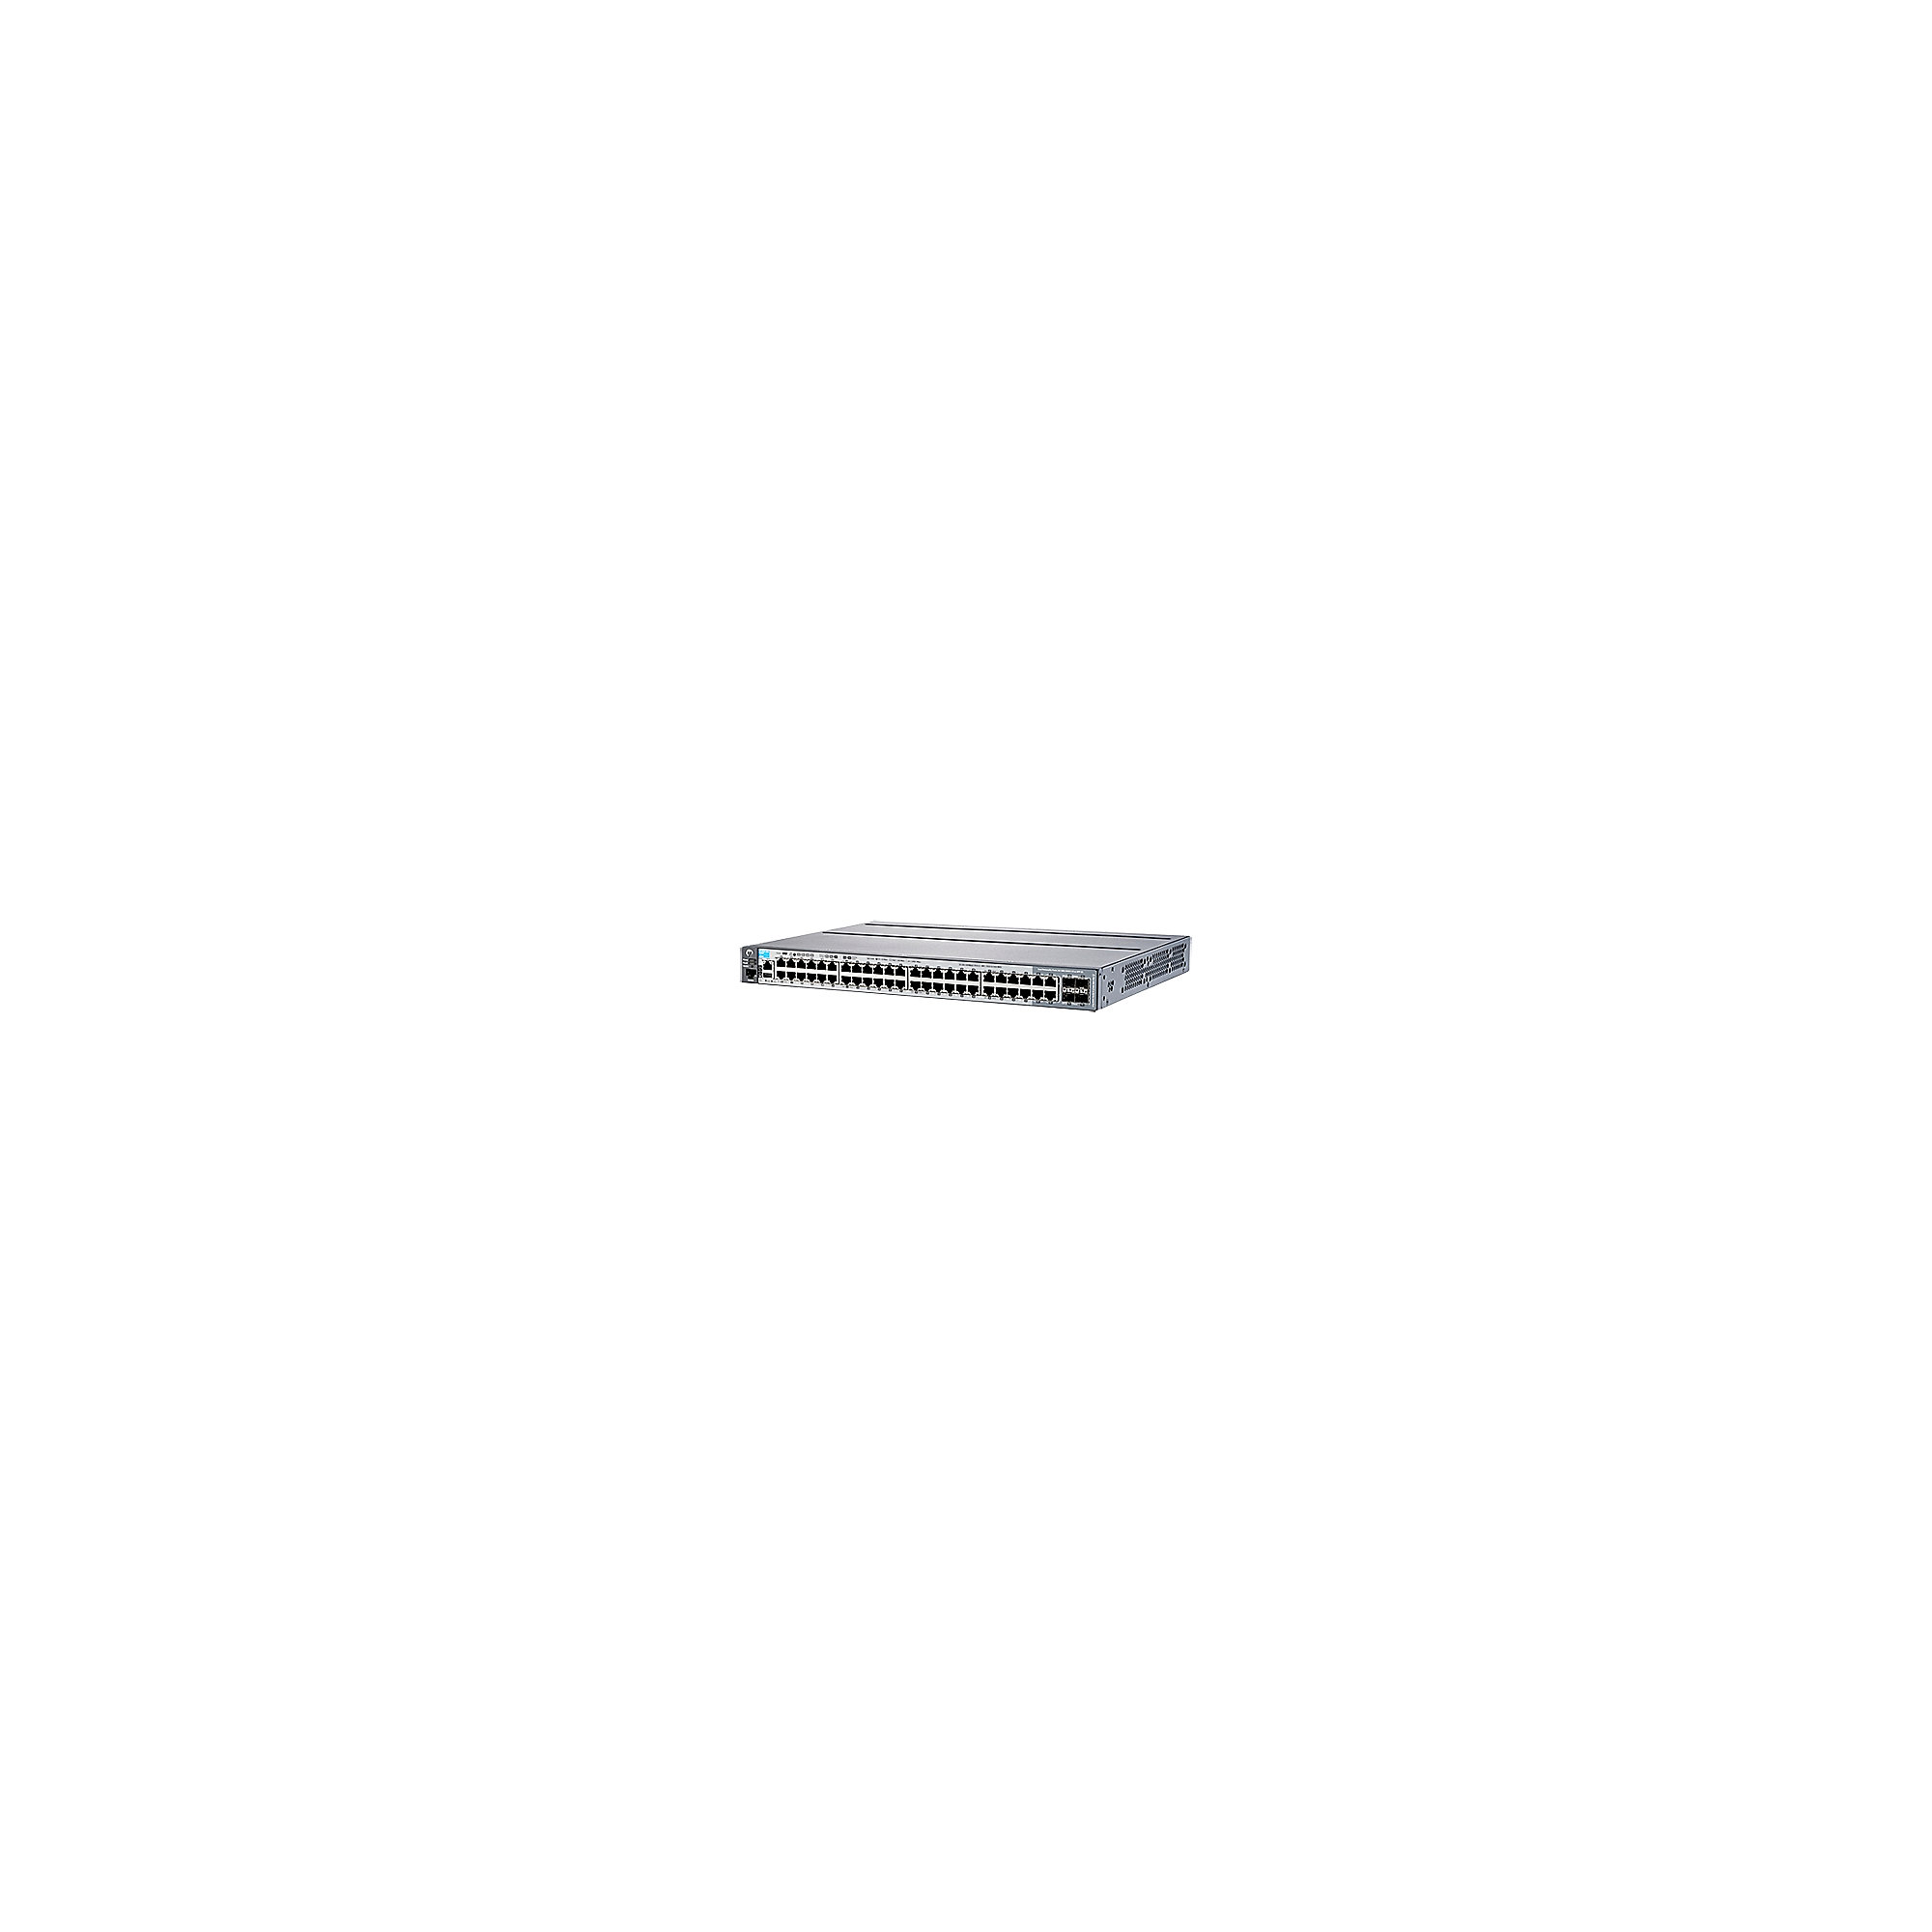 HP 2920-48G Switch 48x Gigabit Switch 4x Gigabit-SFP